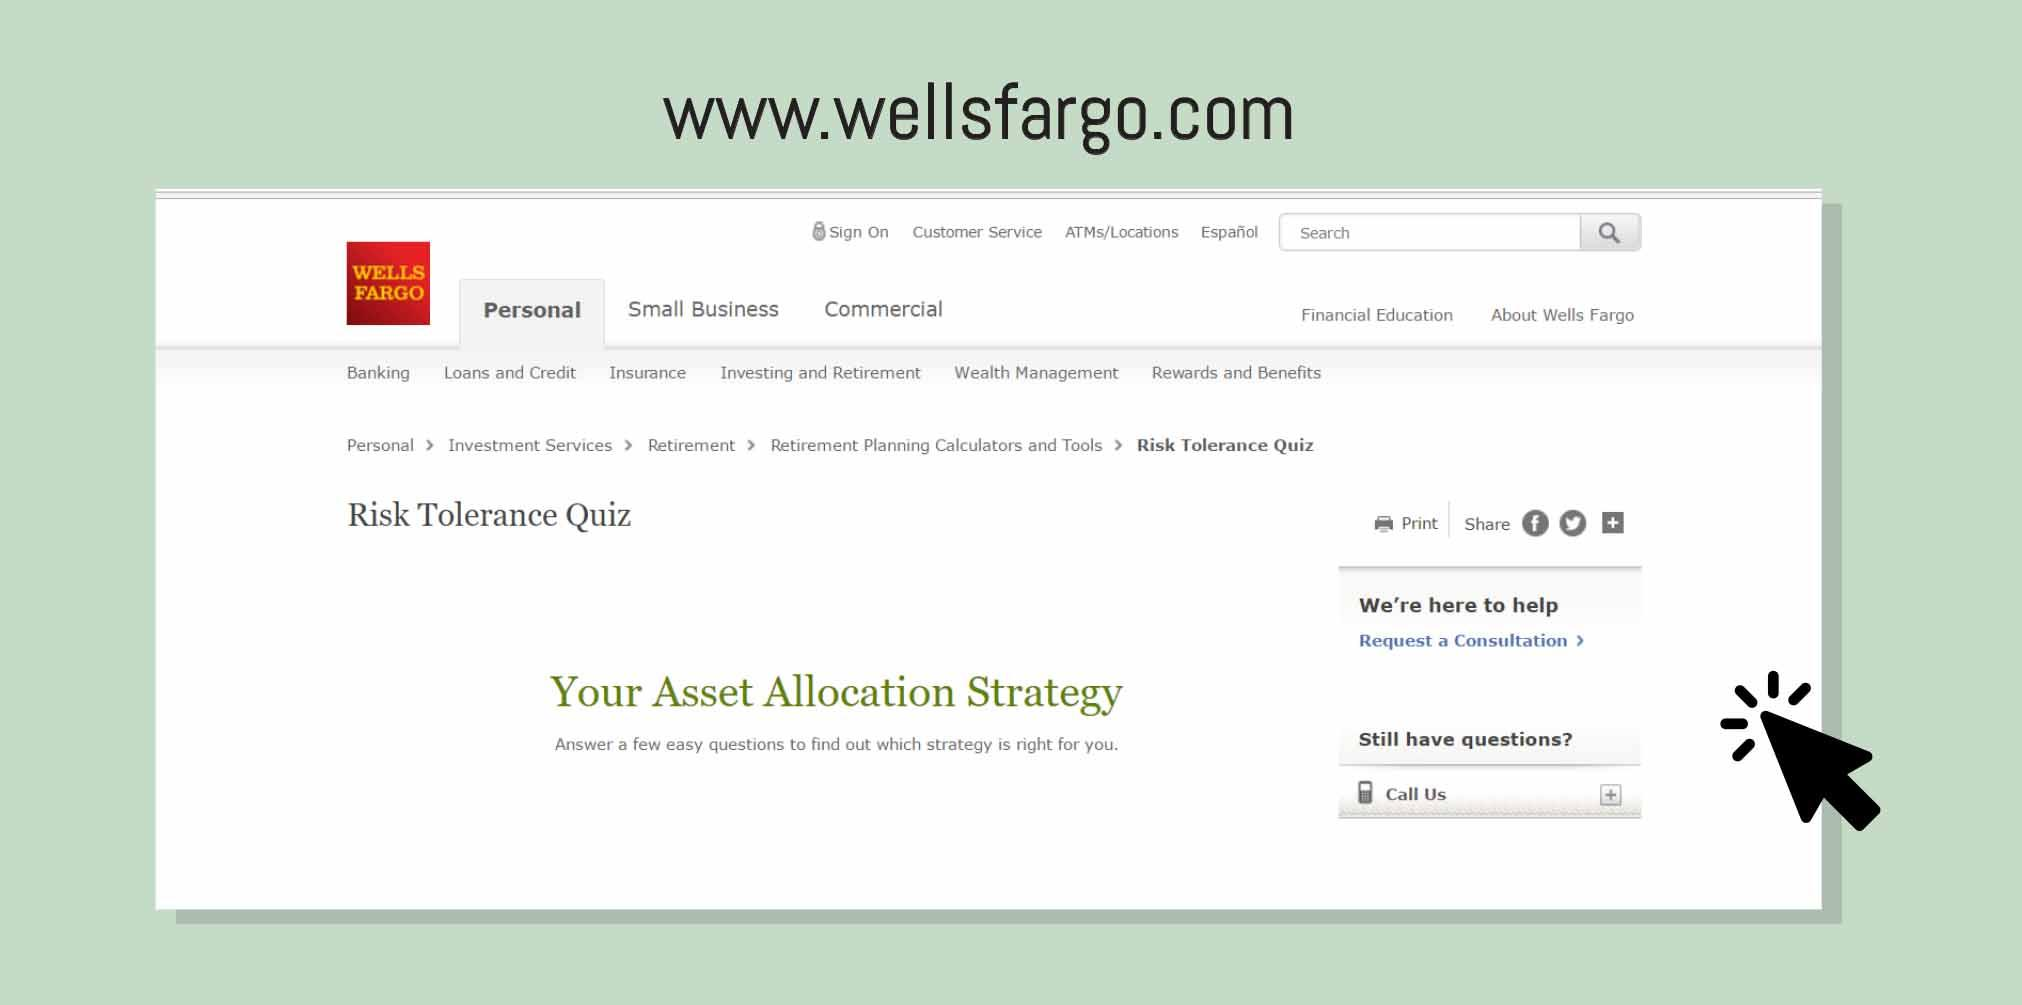 Decide the best asset allocation for you